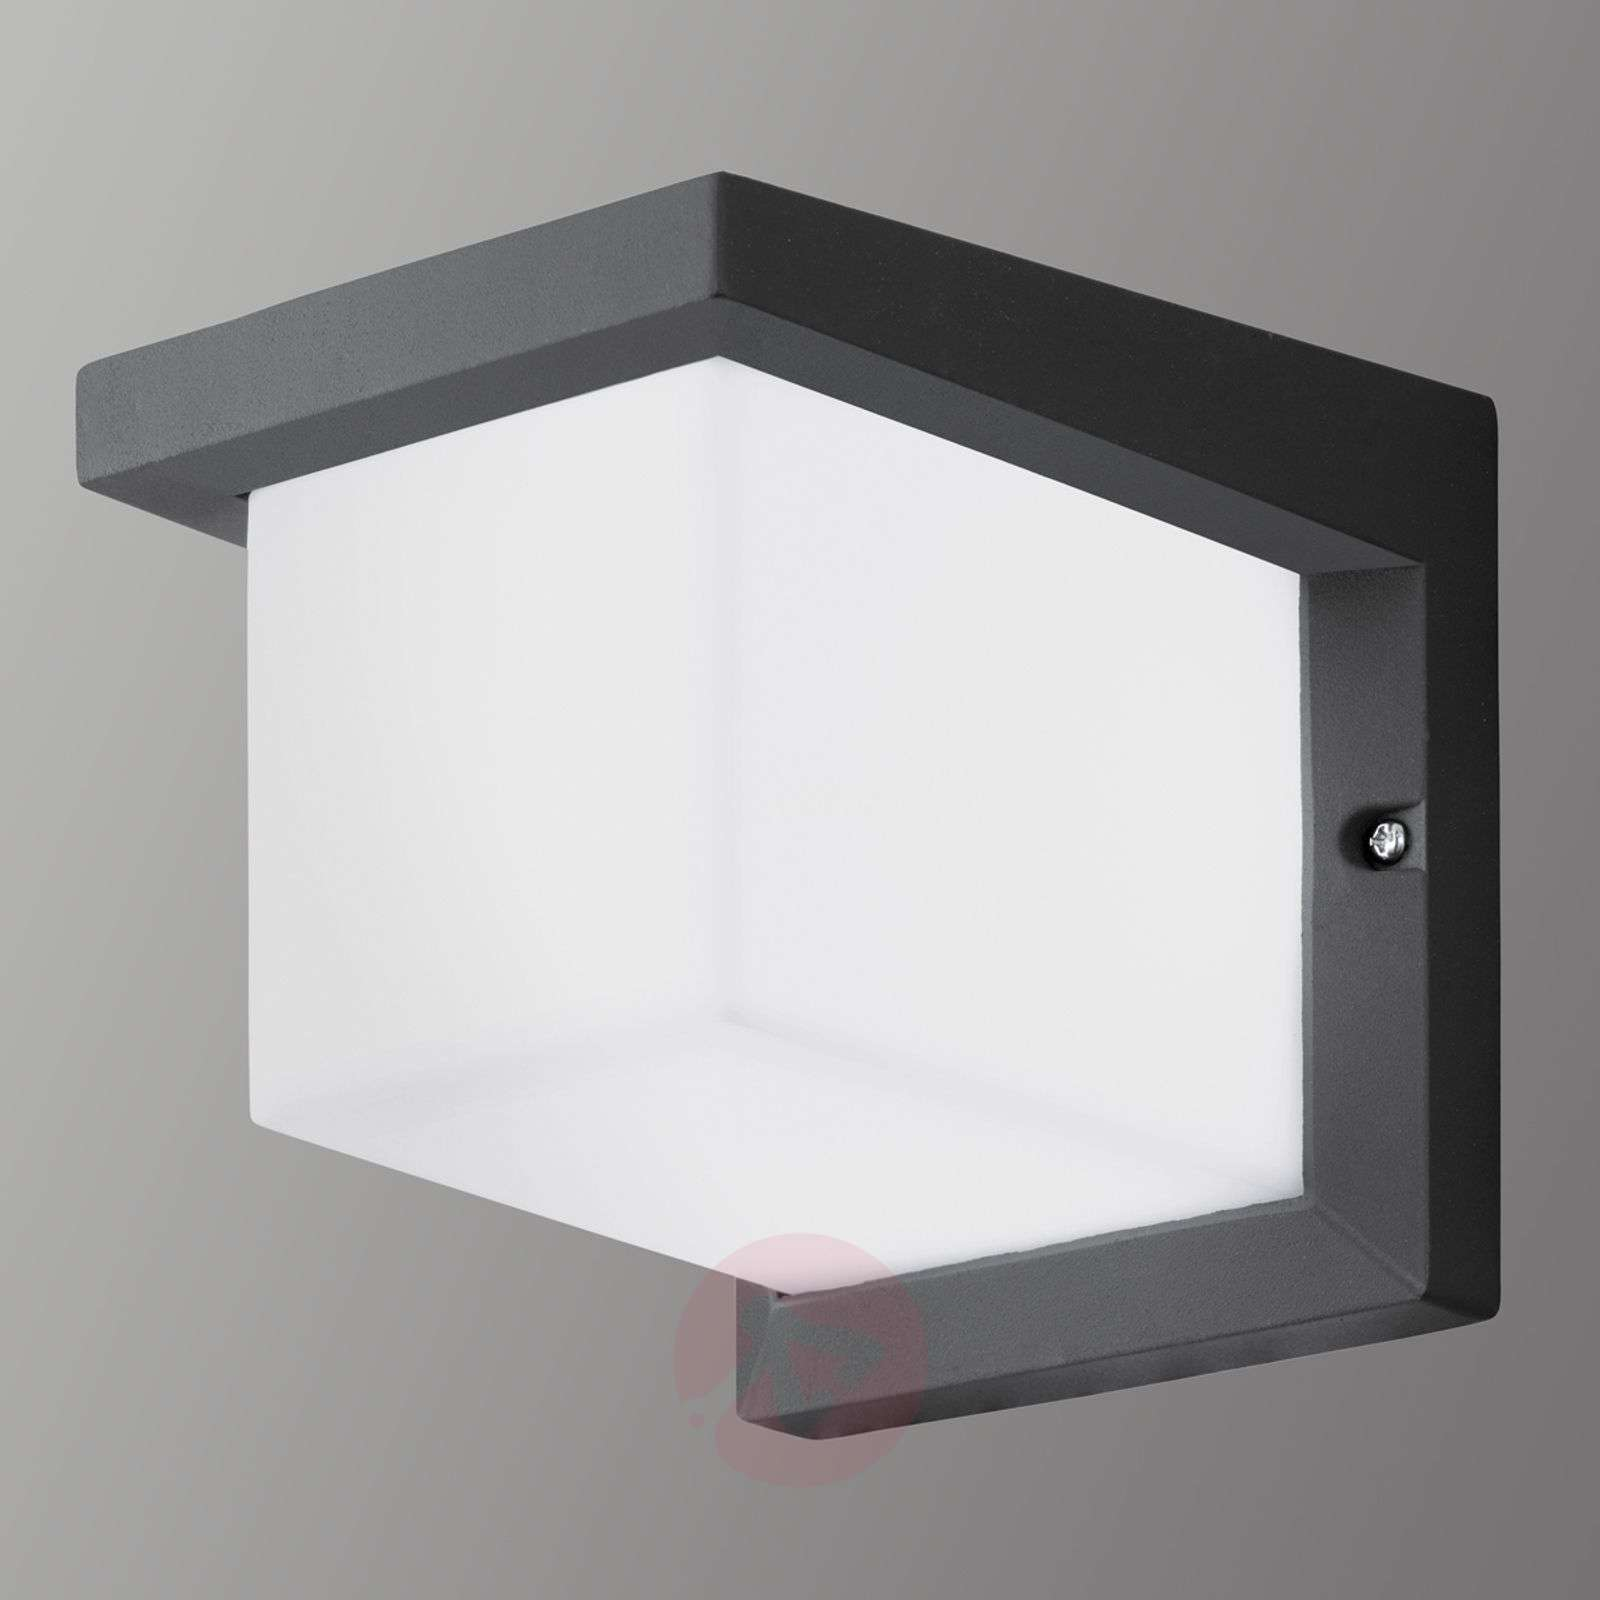 Acquista applique led da esterno desella a forma di cubo for Led esterno